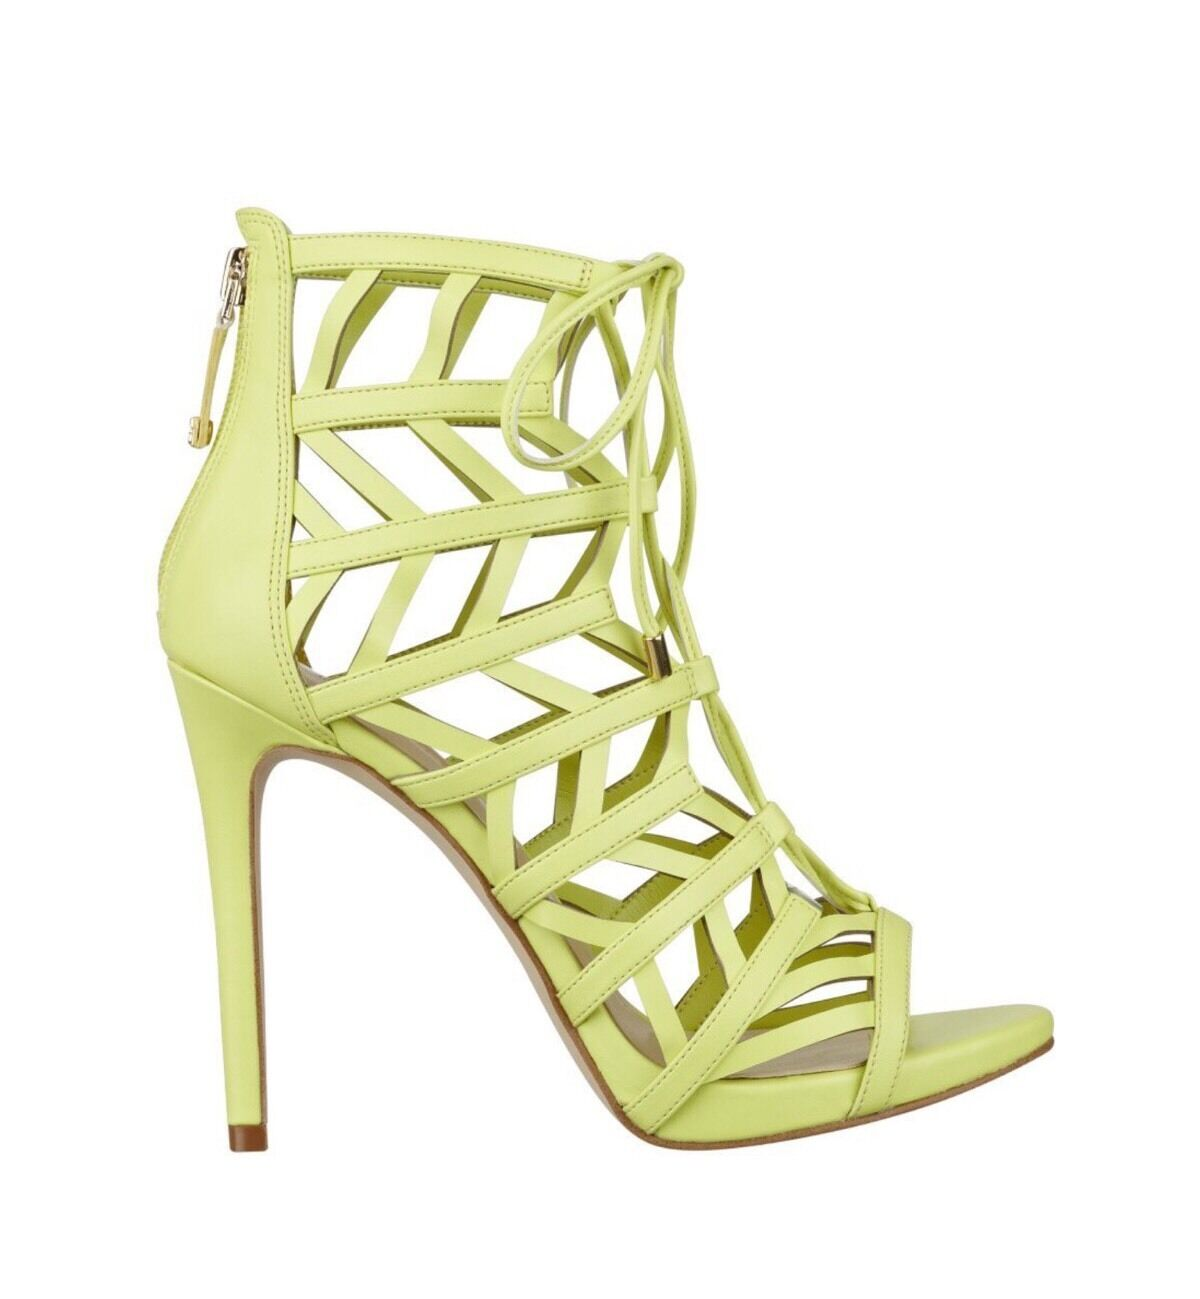 Guess Femme Anasia Caged Talons Hauts En Jaune Lacets Taille 7